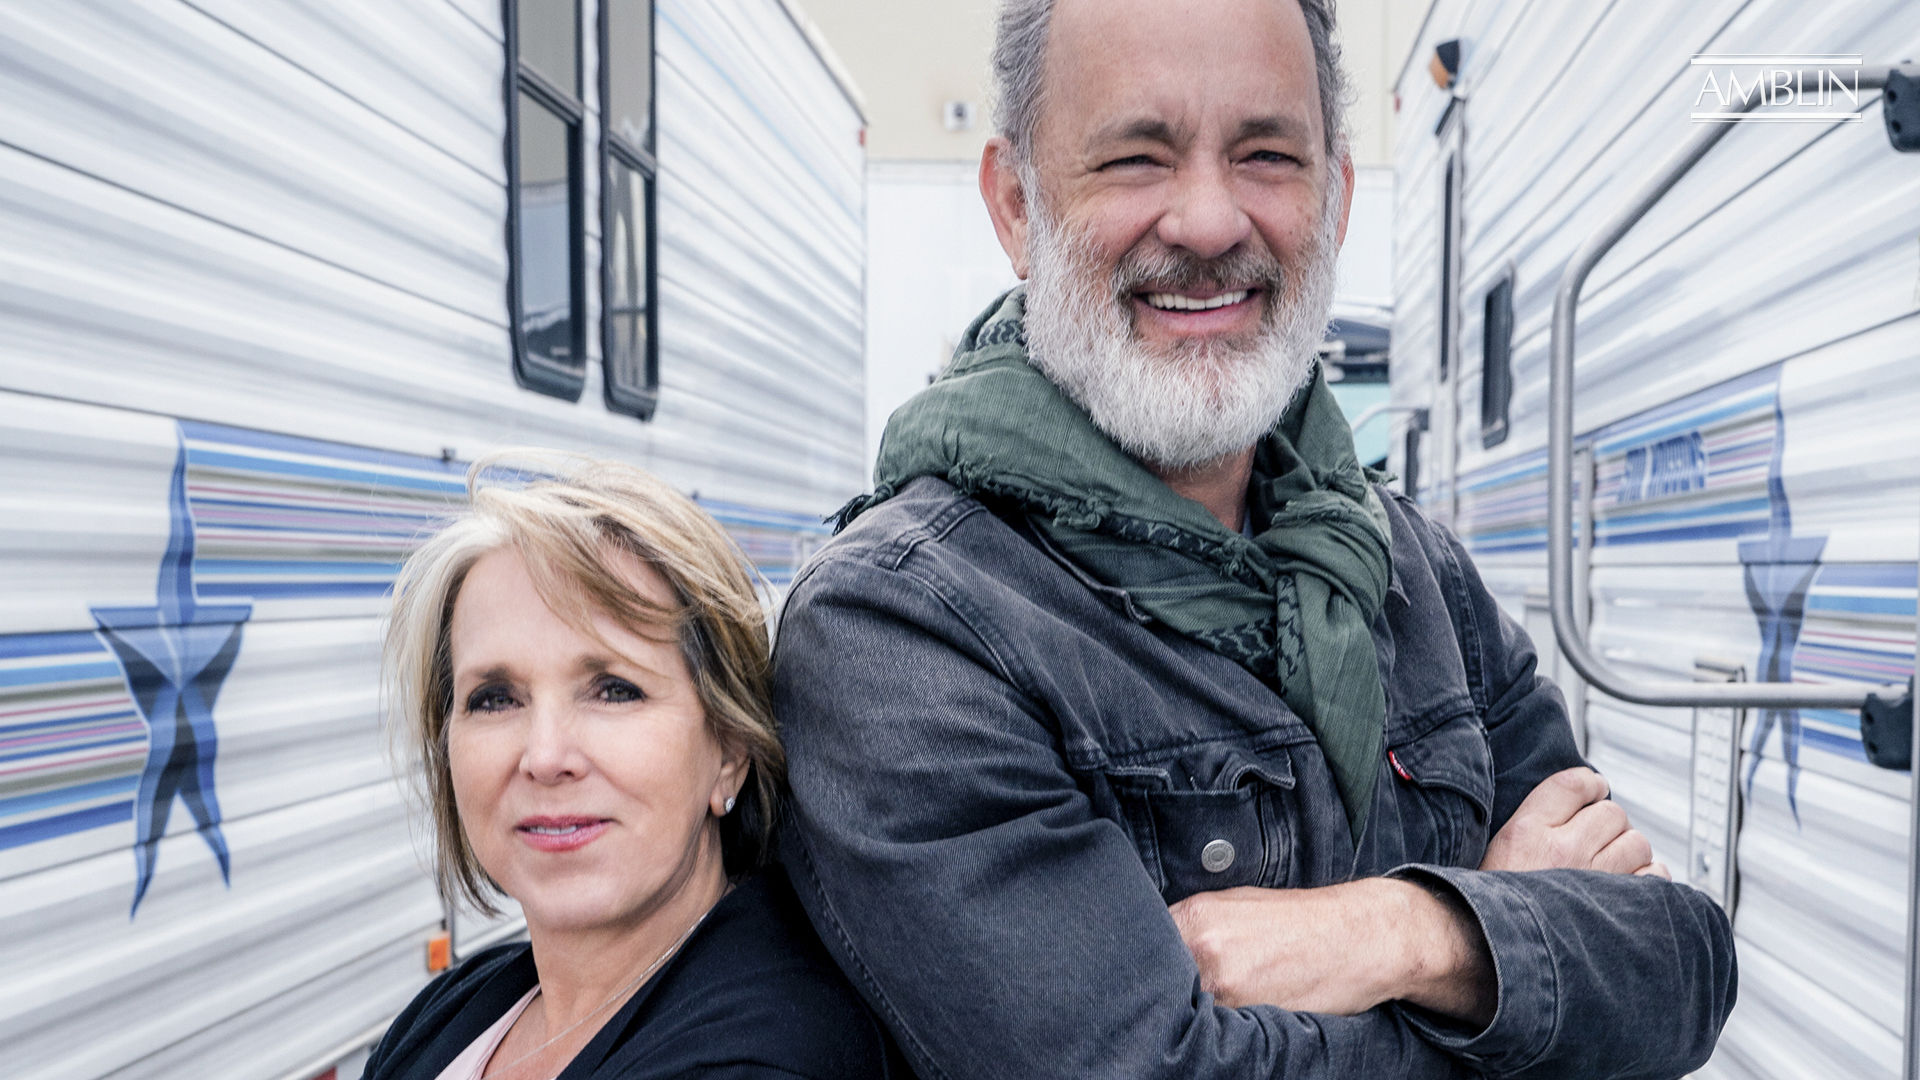 Actor Tom Hanks poses with New Mexico State Governor Michelle Lynn Lujan Grisham. Photo credits: Karen Kuehn/Universal Pictures and Amblin Entertainment